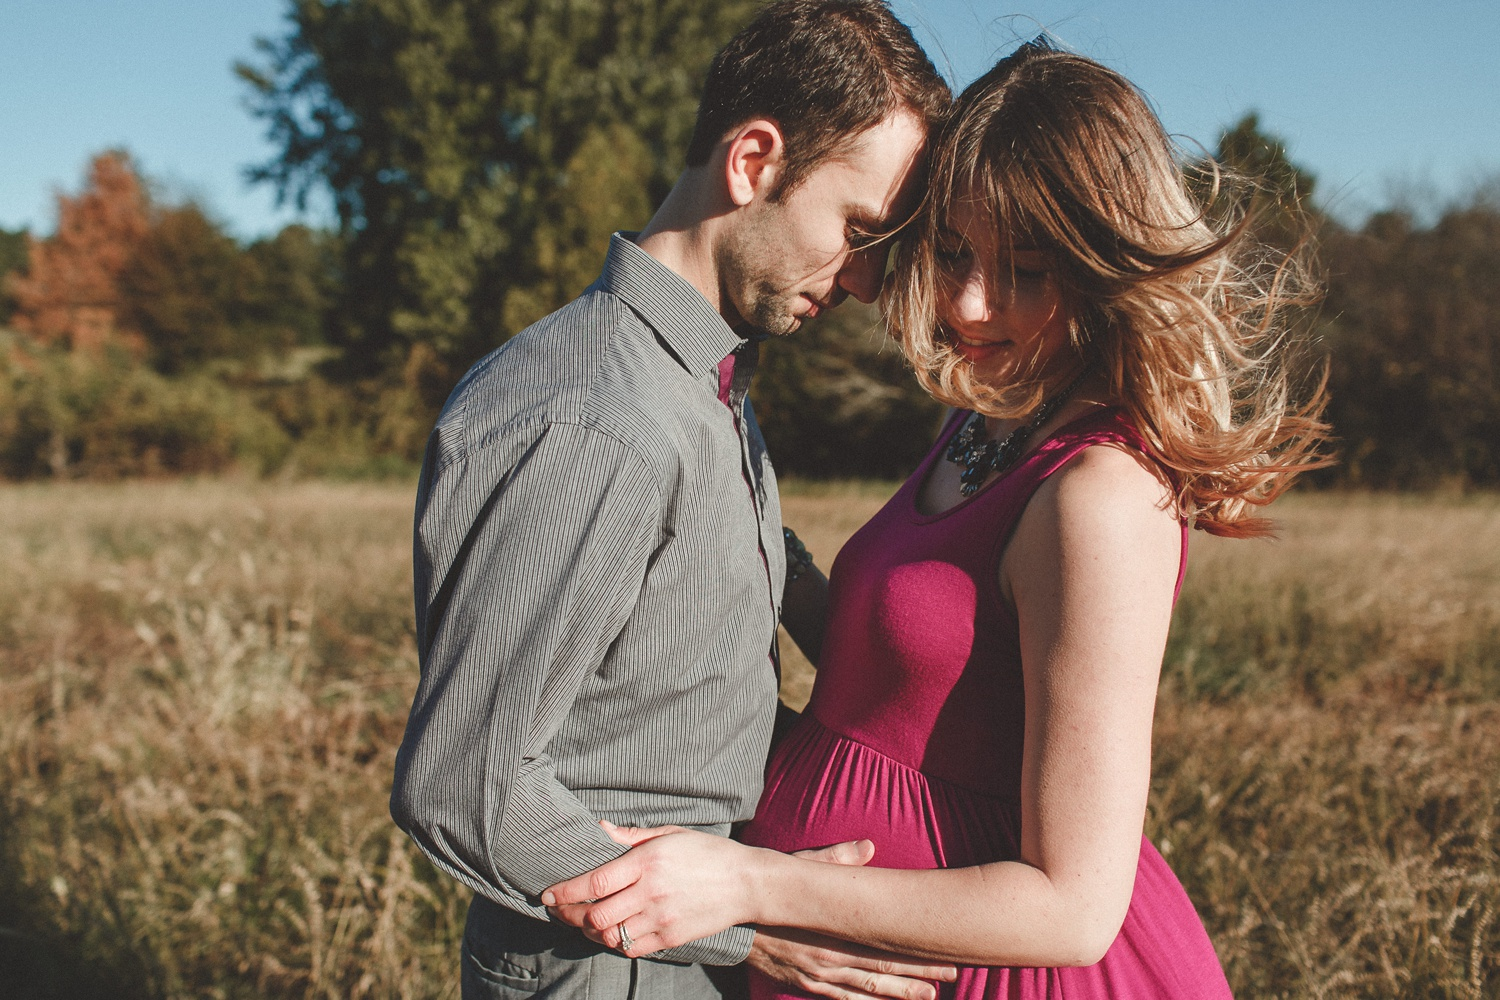 dekalb_IL_maternity_portrait_photographer_0012.jpg